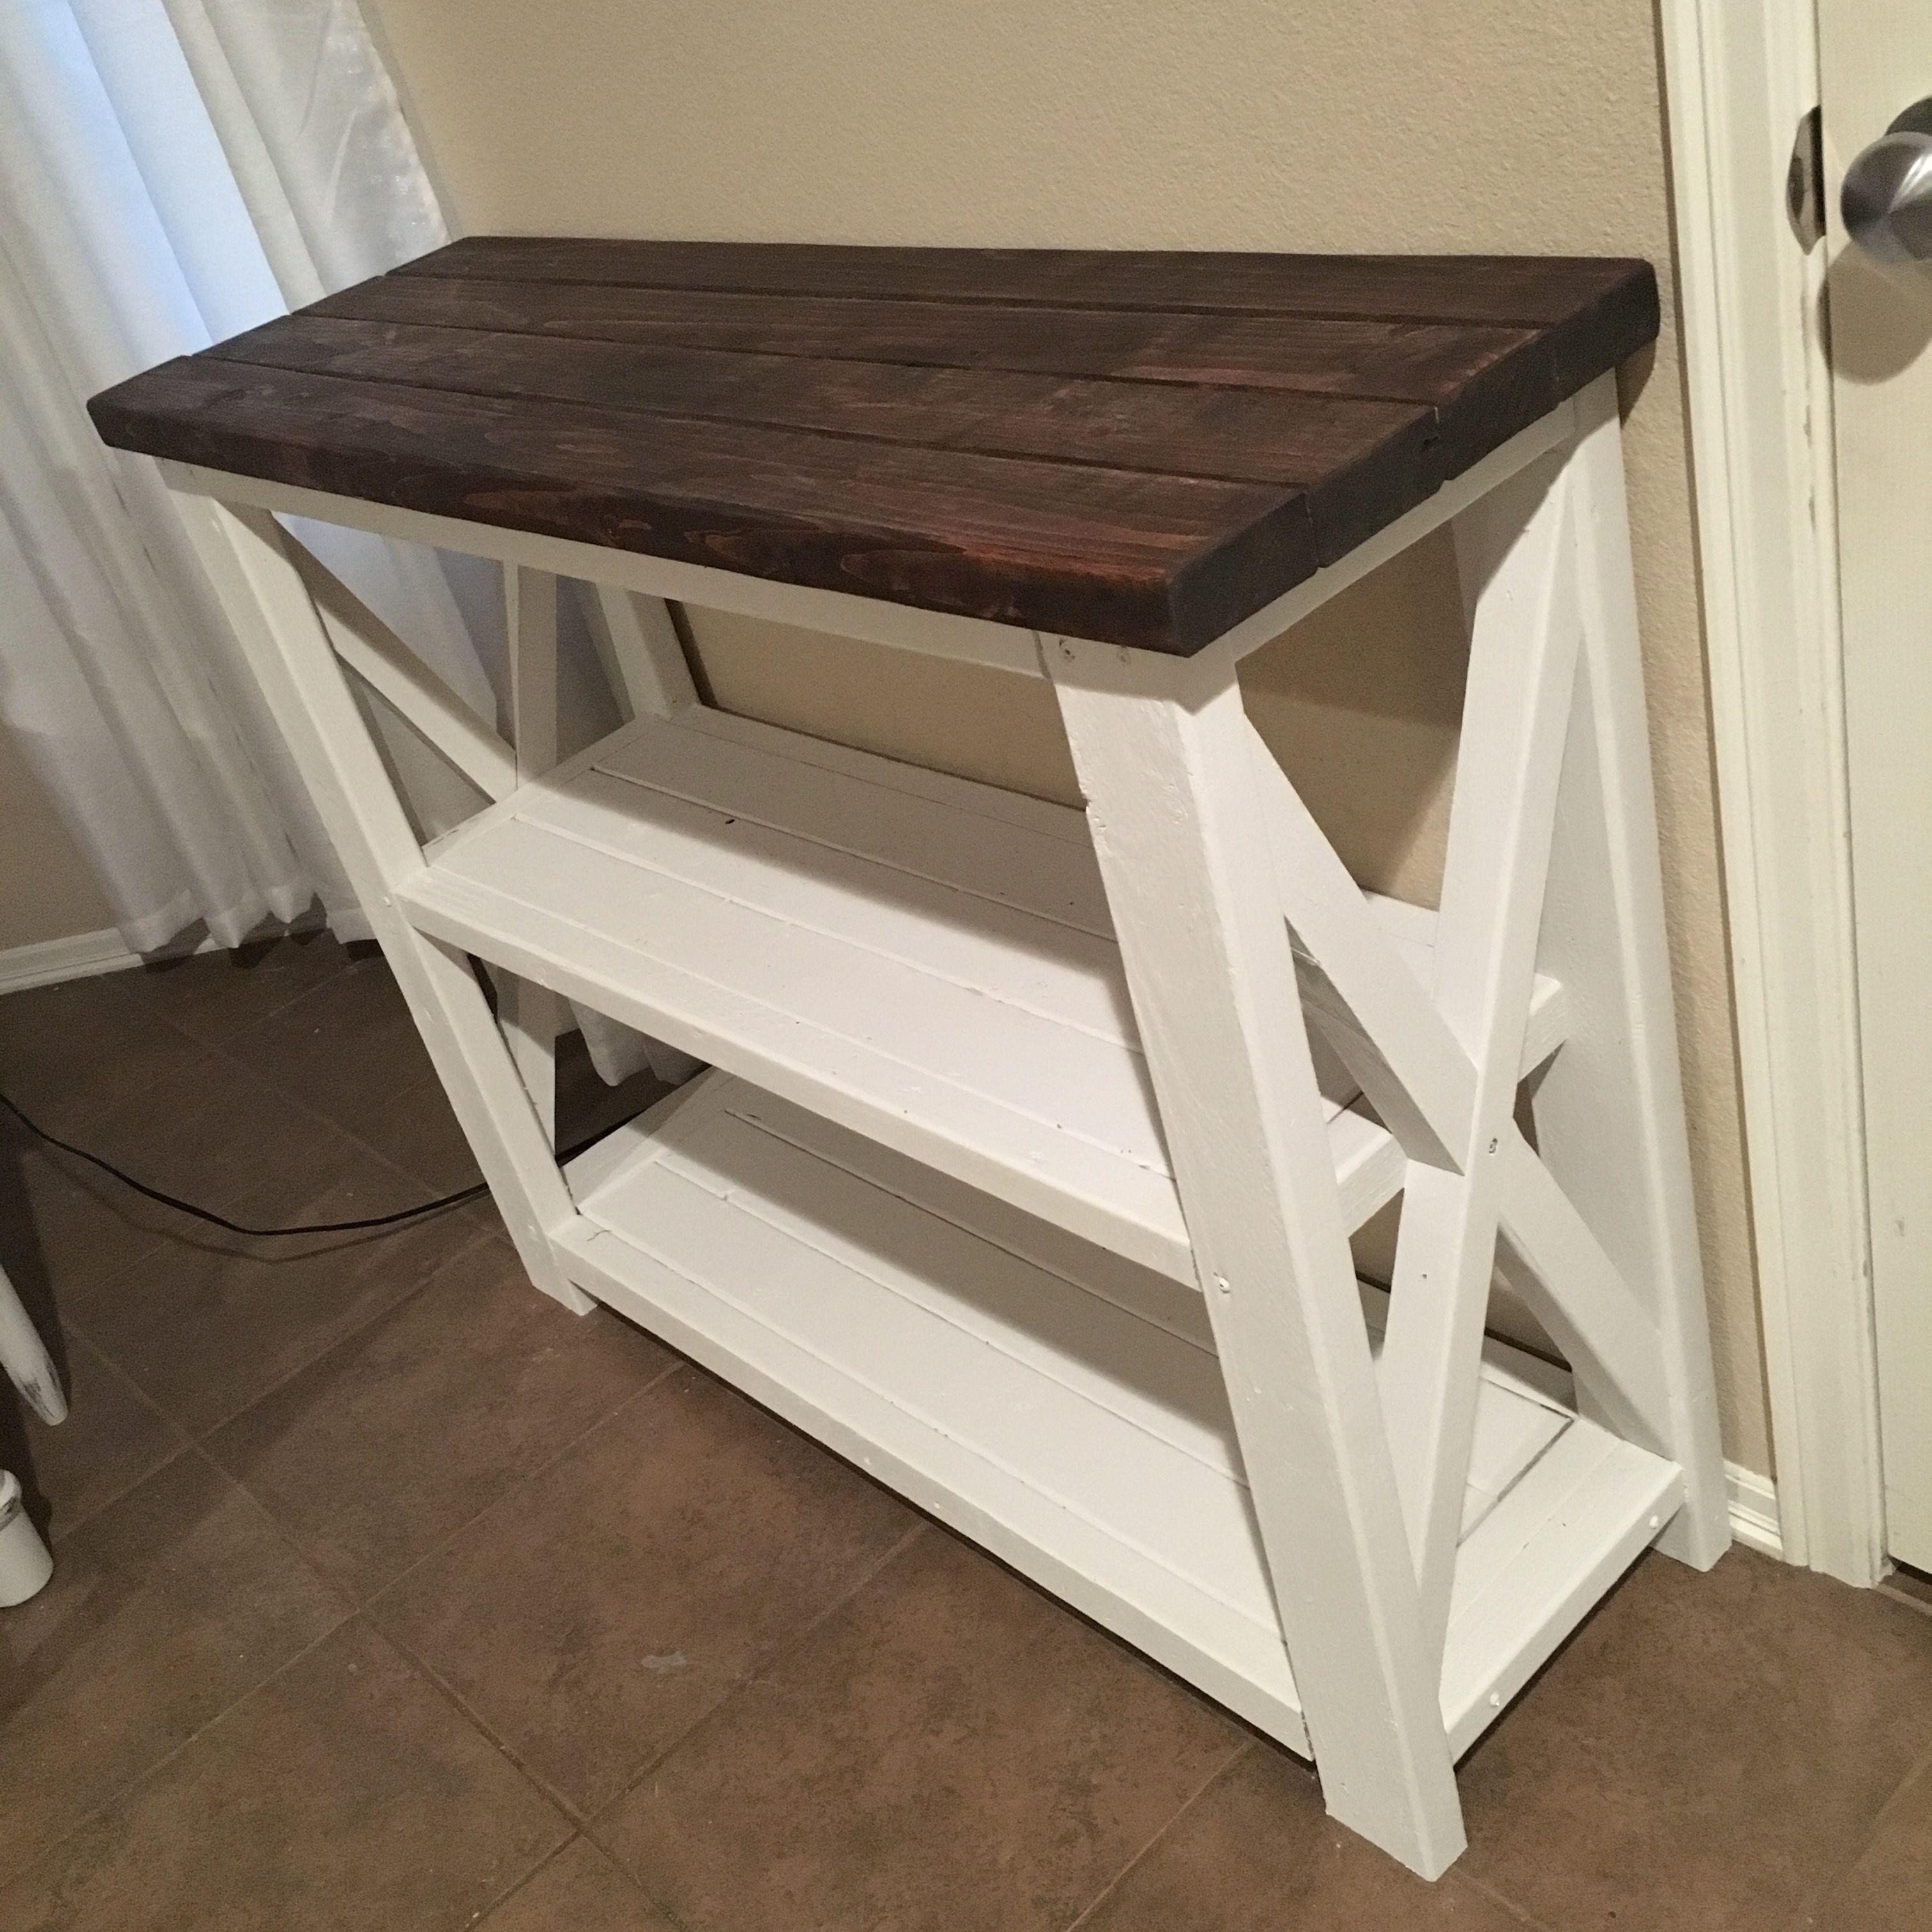 Diy Rustic X Table Console Modified Ana White Design Put In The Kitchen To Use As Coffee Bar Far Rustic Furniture Diy Farmhouse Console Table Home Decor